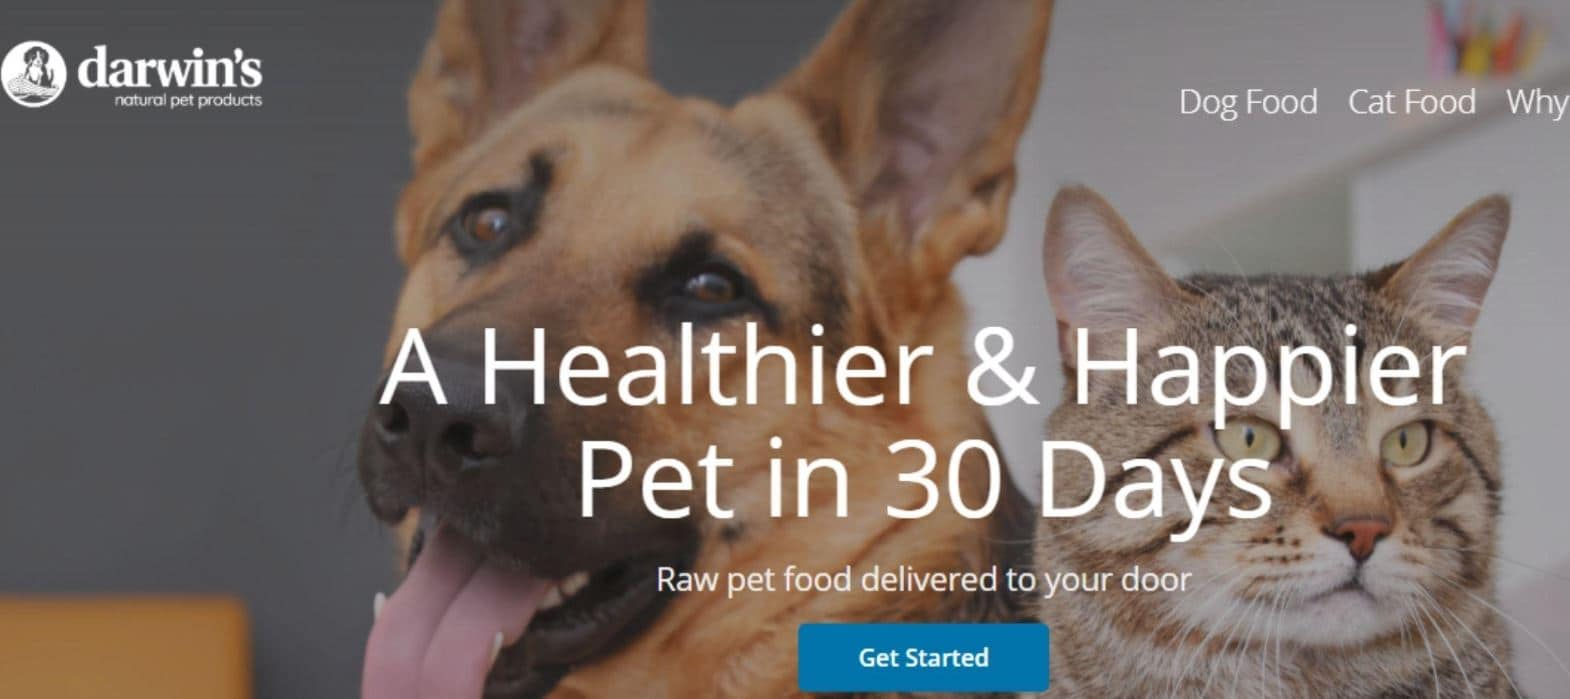 Darwin's Natural Pet Products is selected as the 5th best option